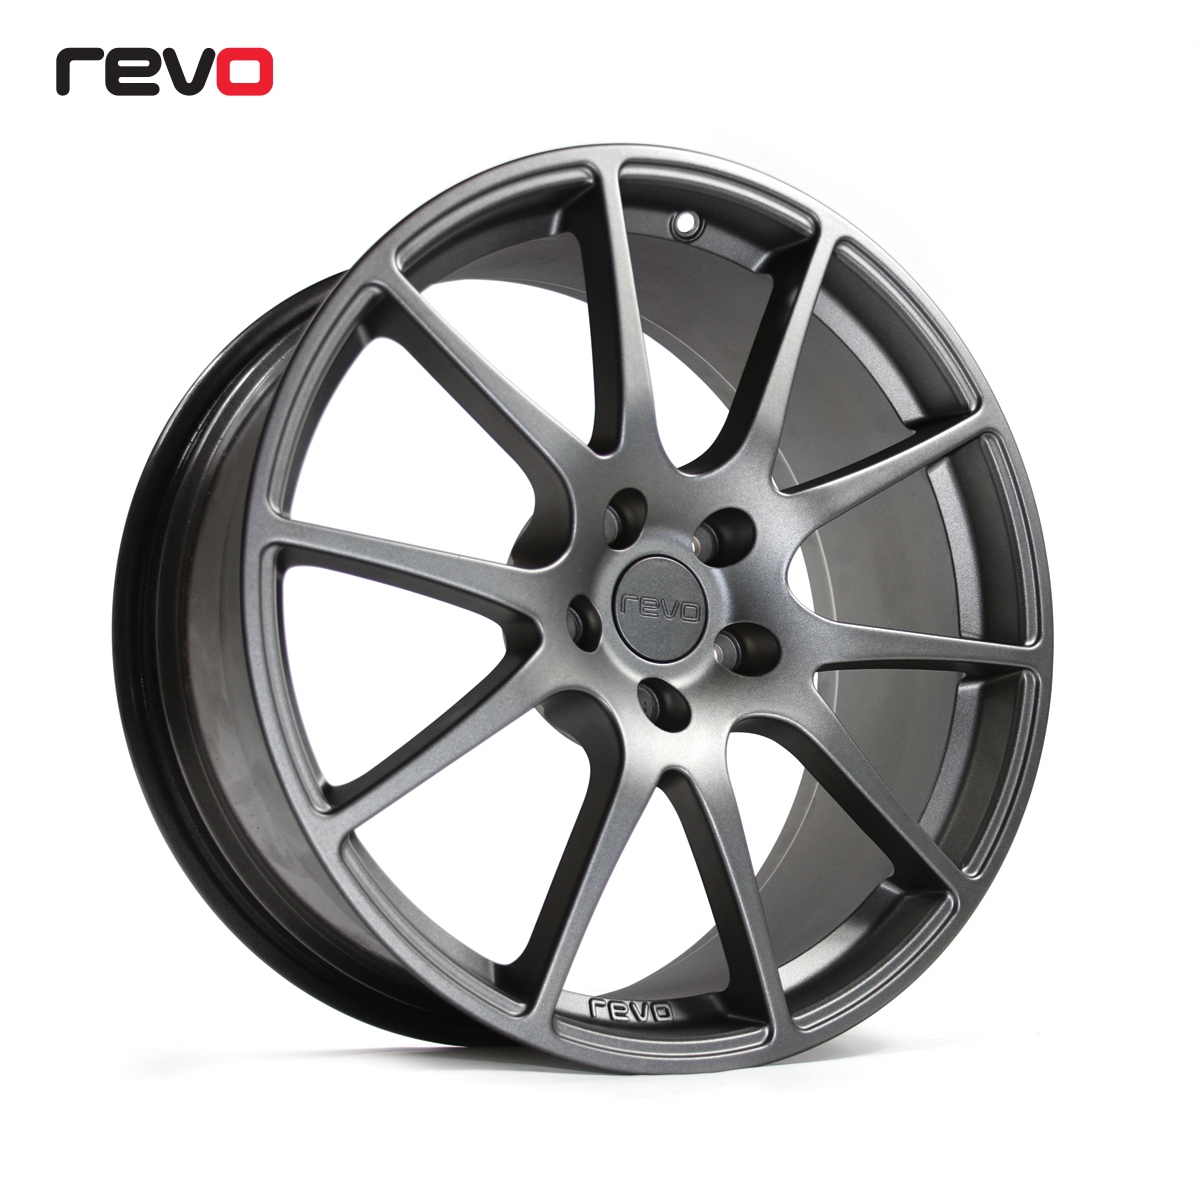 Revo RV018 Wheelset 18 x 8, 4 x 108, ET40, 64.3mm CB